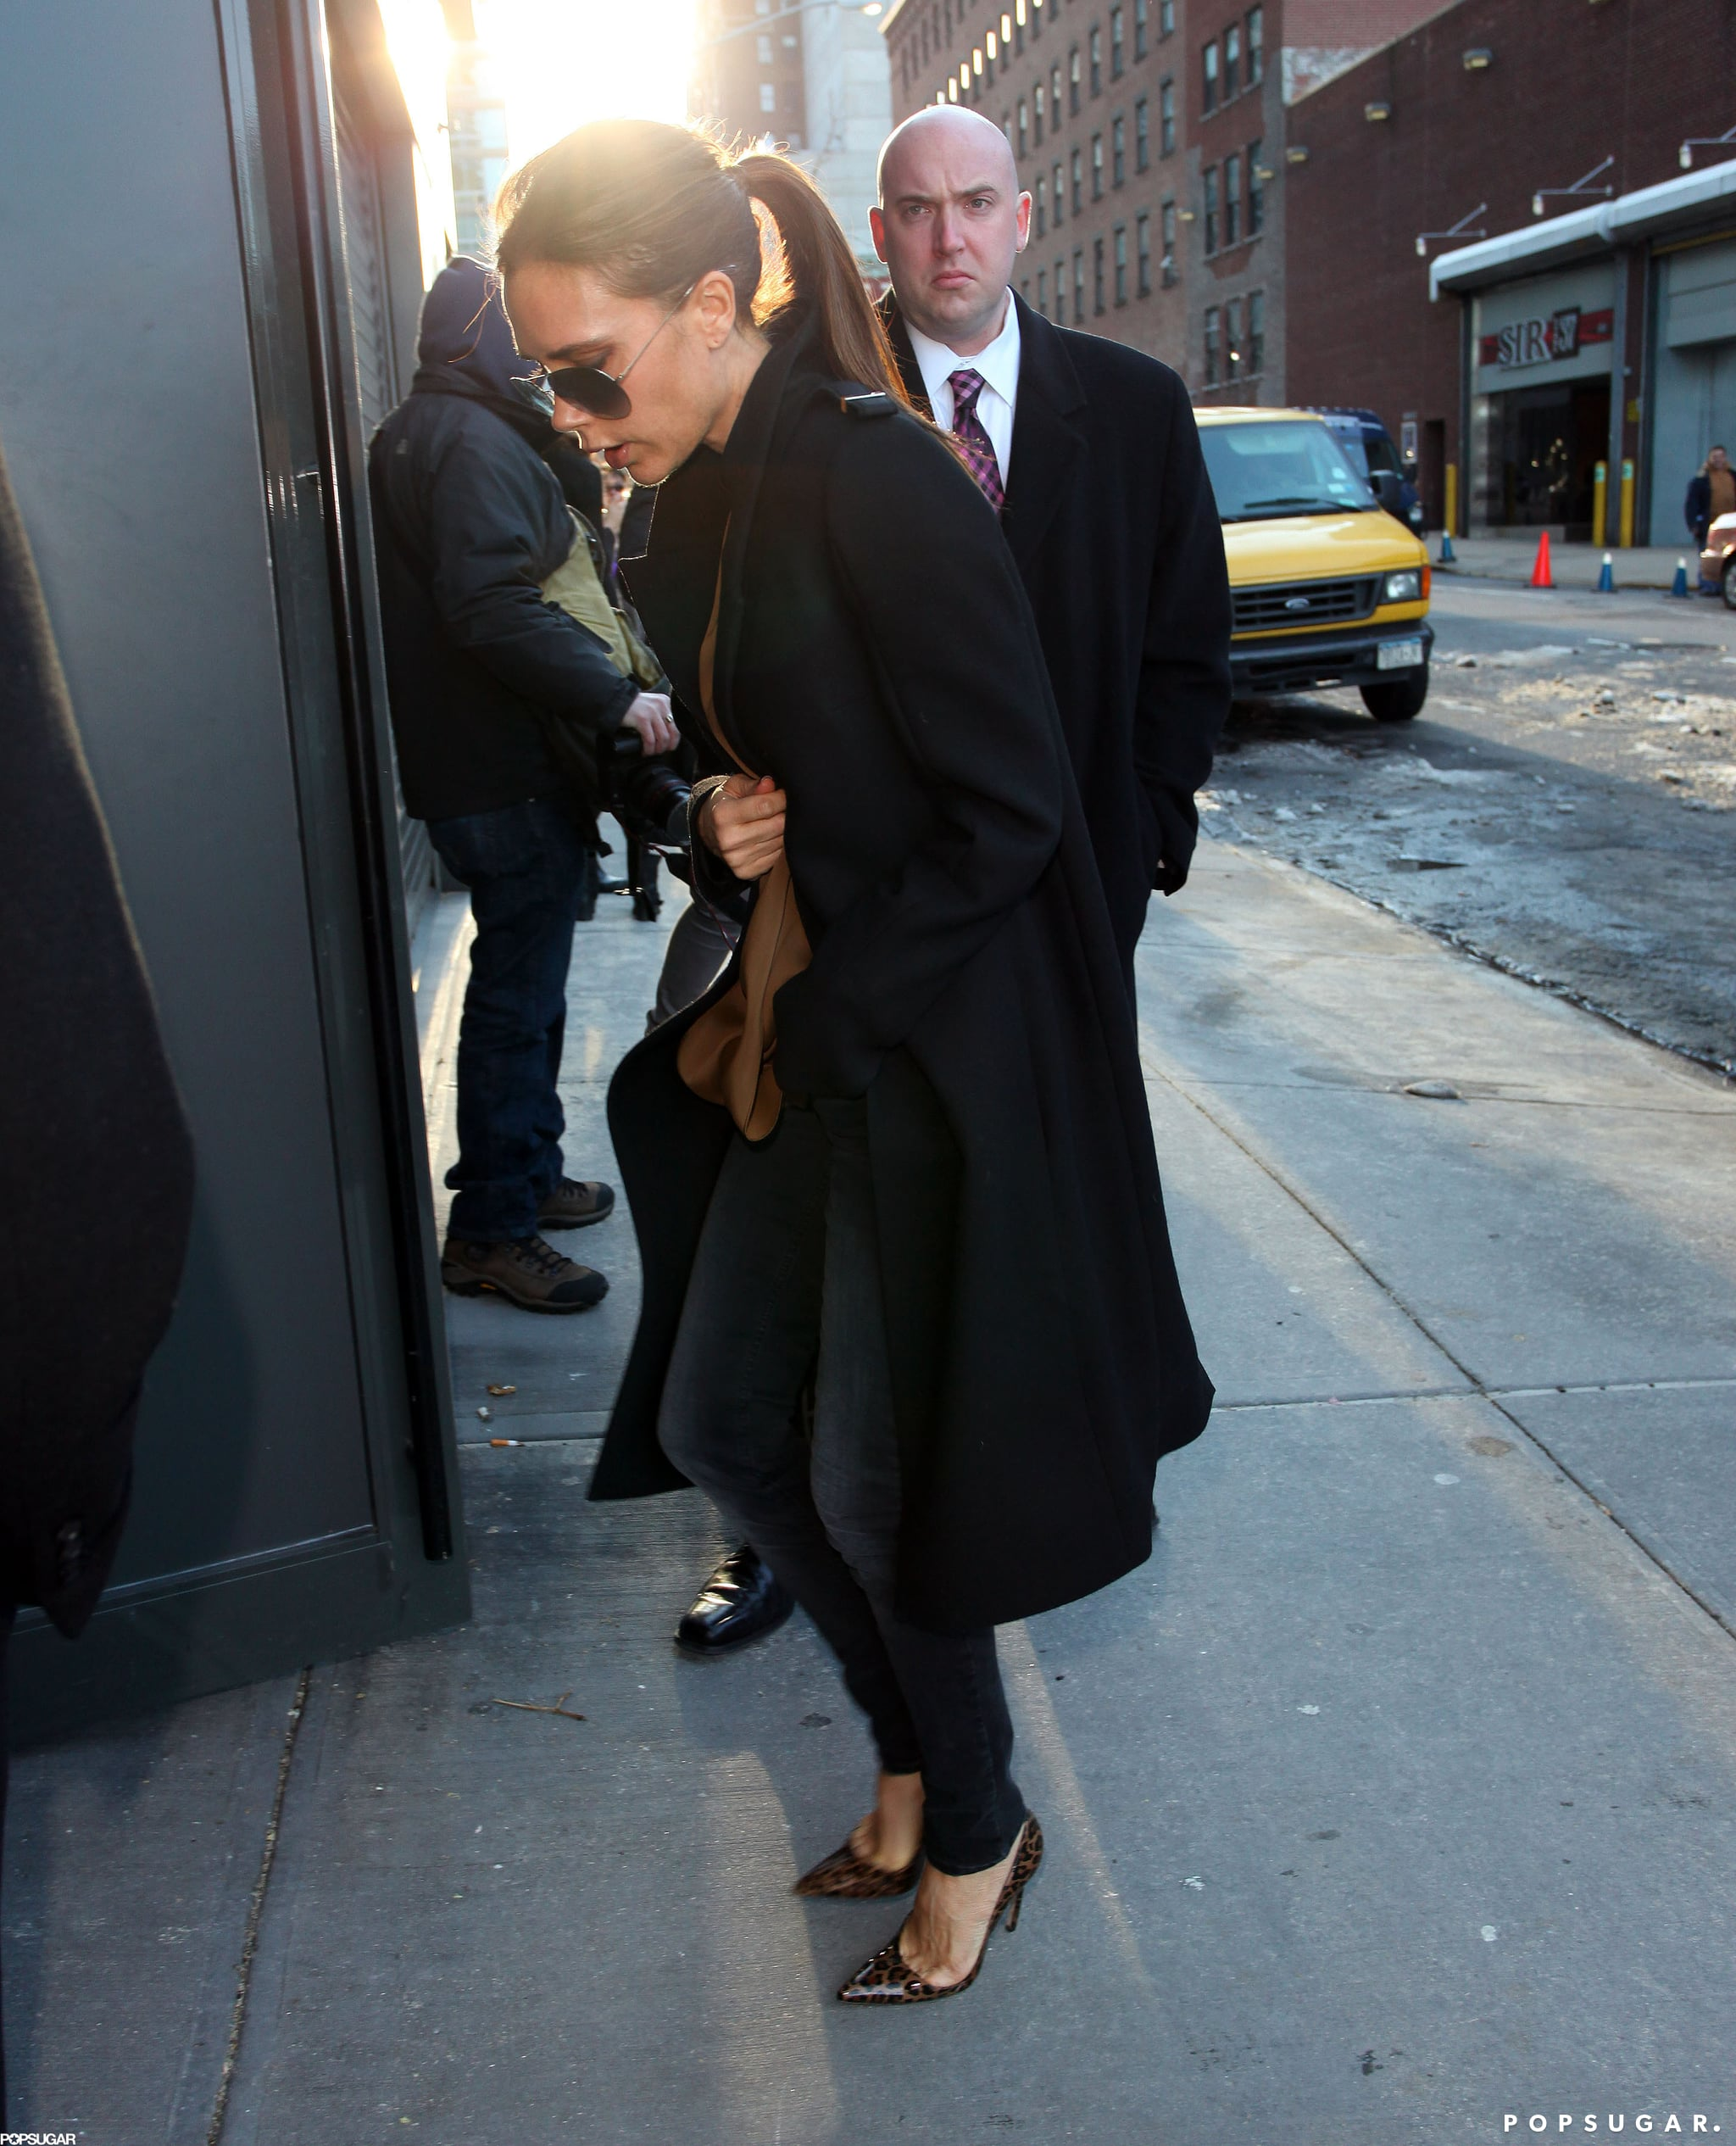 Victoria Beckham Brings Harper to Her Latest NYFW Show